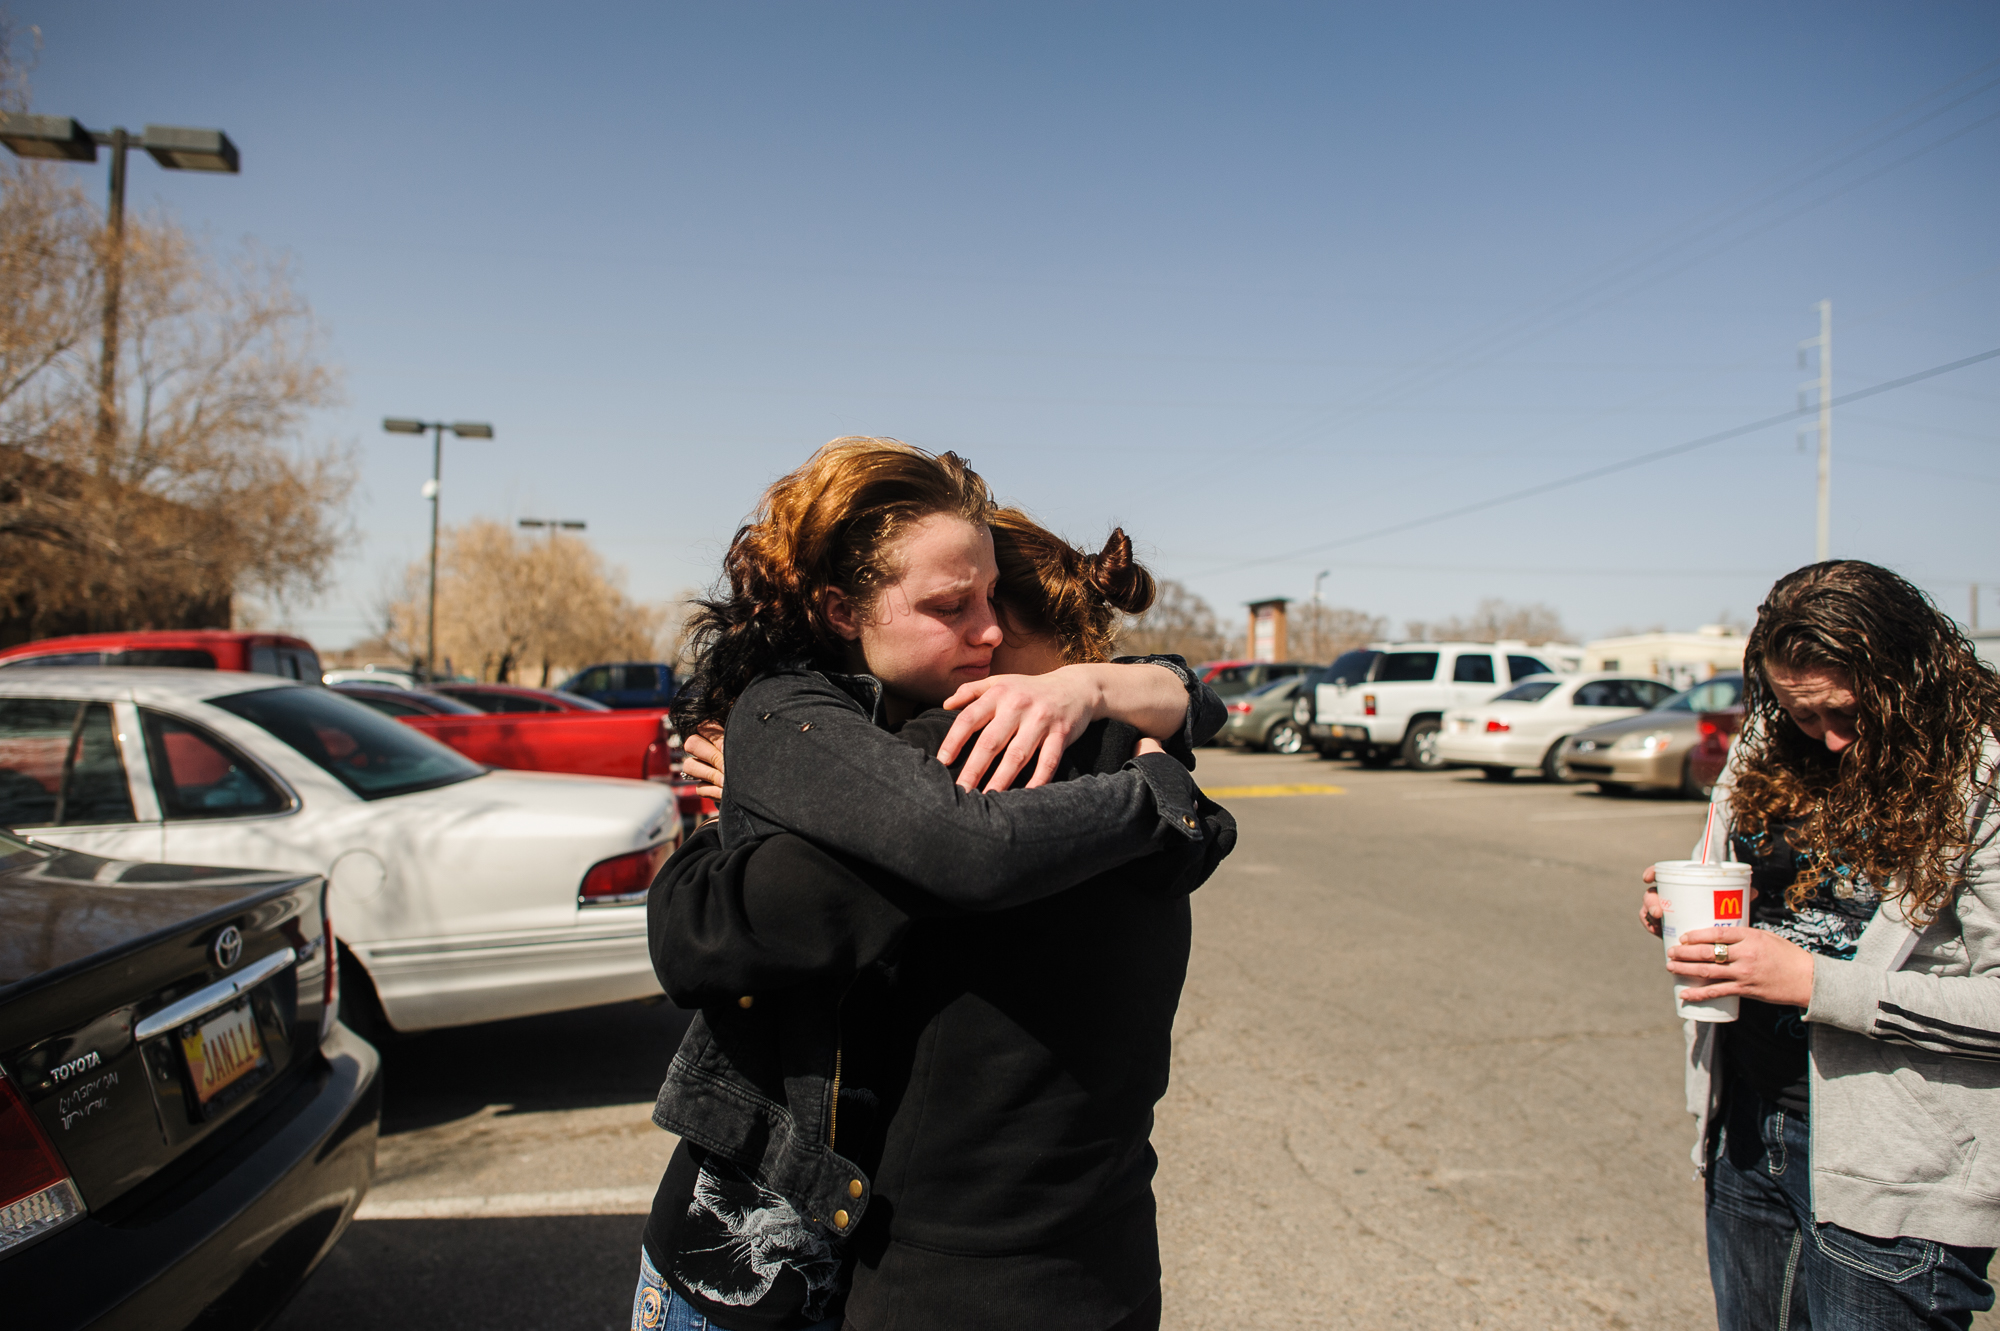 Alysia cries and hugs her cousin, while her mother, Anastasia, (right) stands and cries. Alysia is given 10 minutes to hug her cousin and her mother before being transferred to a court-ordered treatment facility for 6 months where she will focus on getting sober from meth.